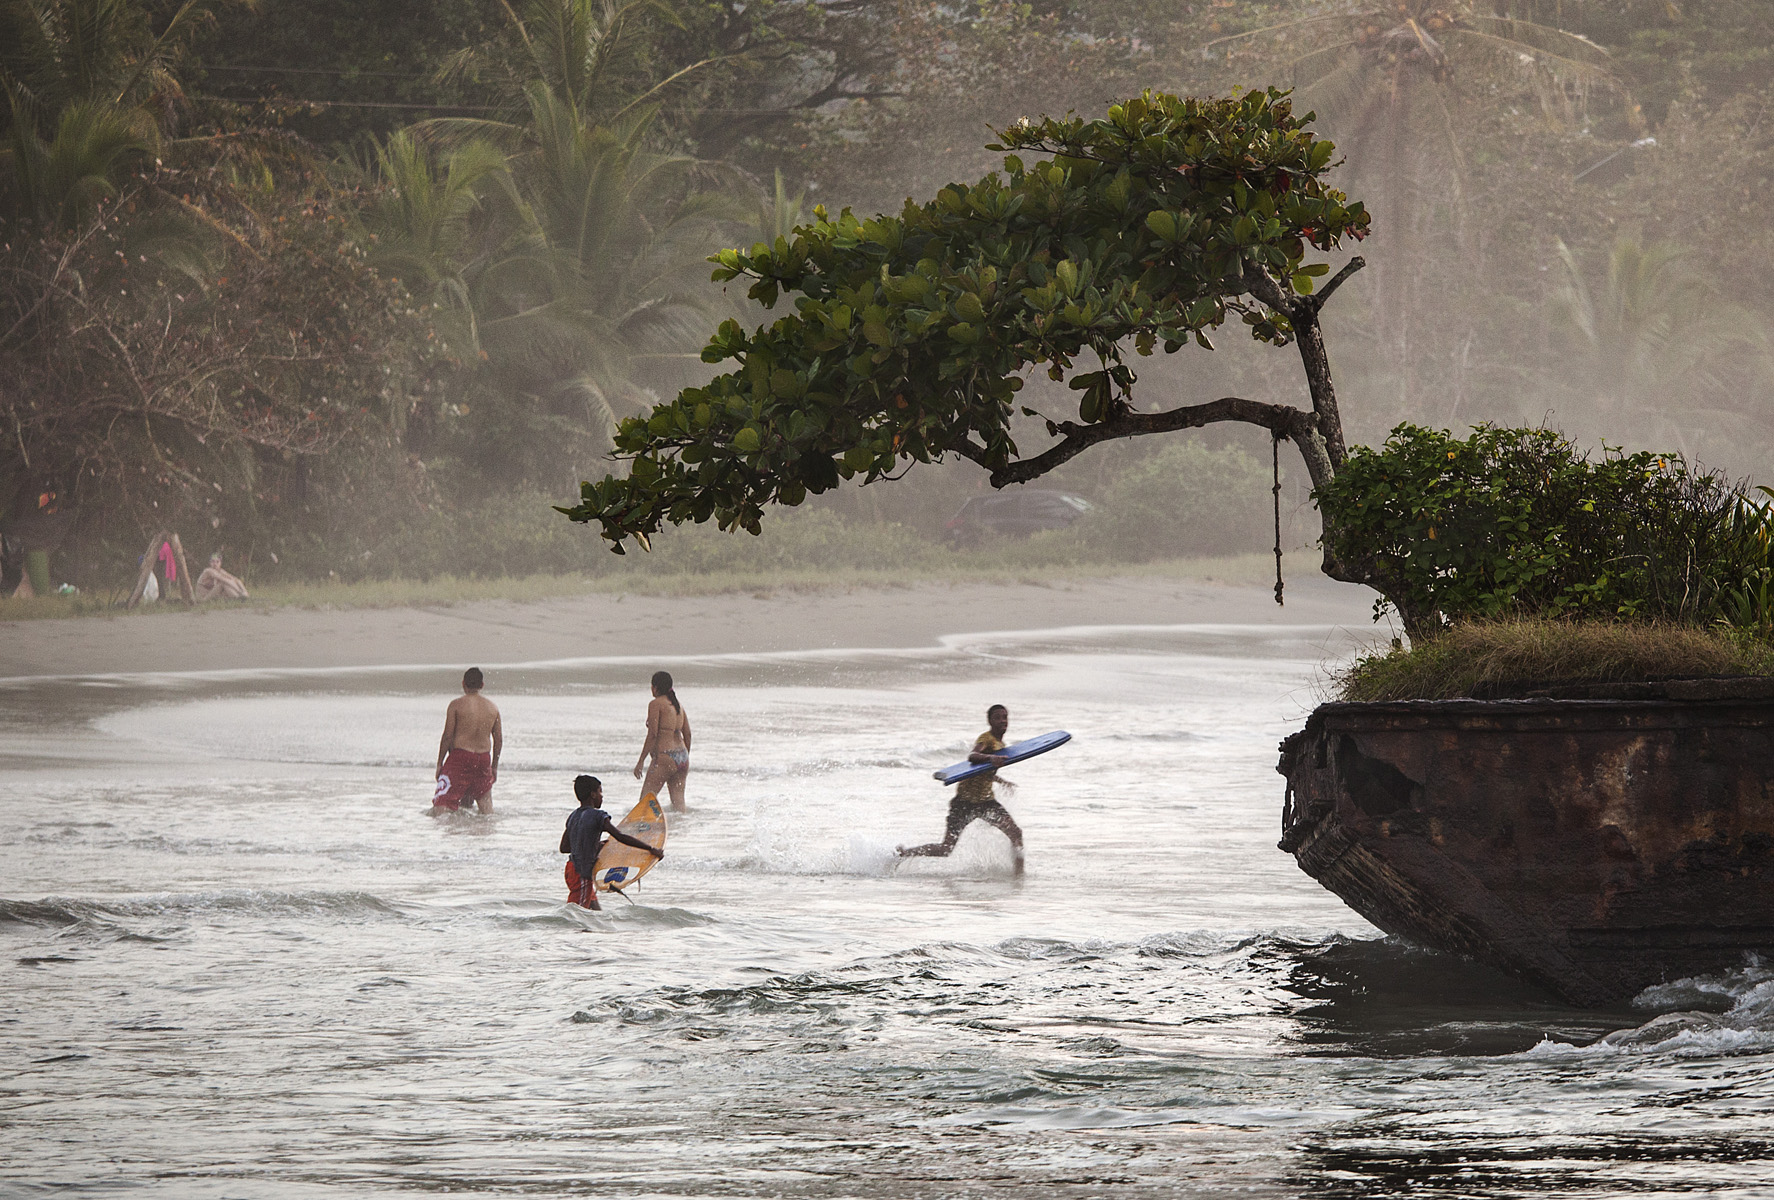 Some guys getting their surf on